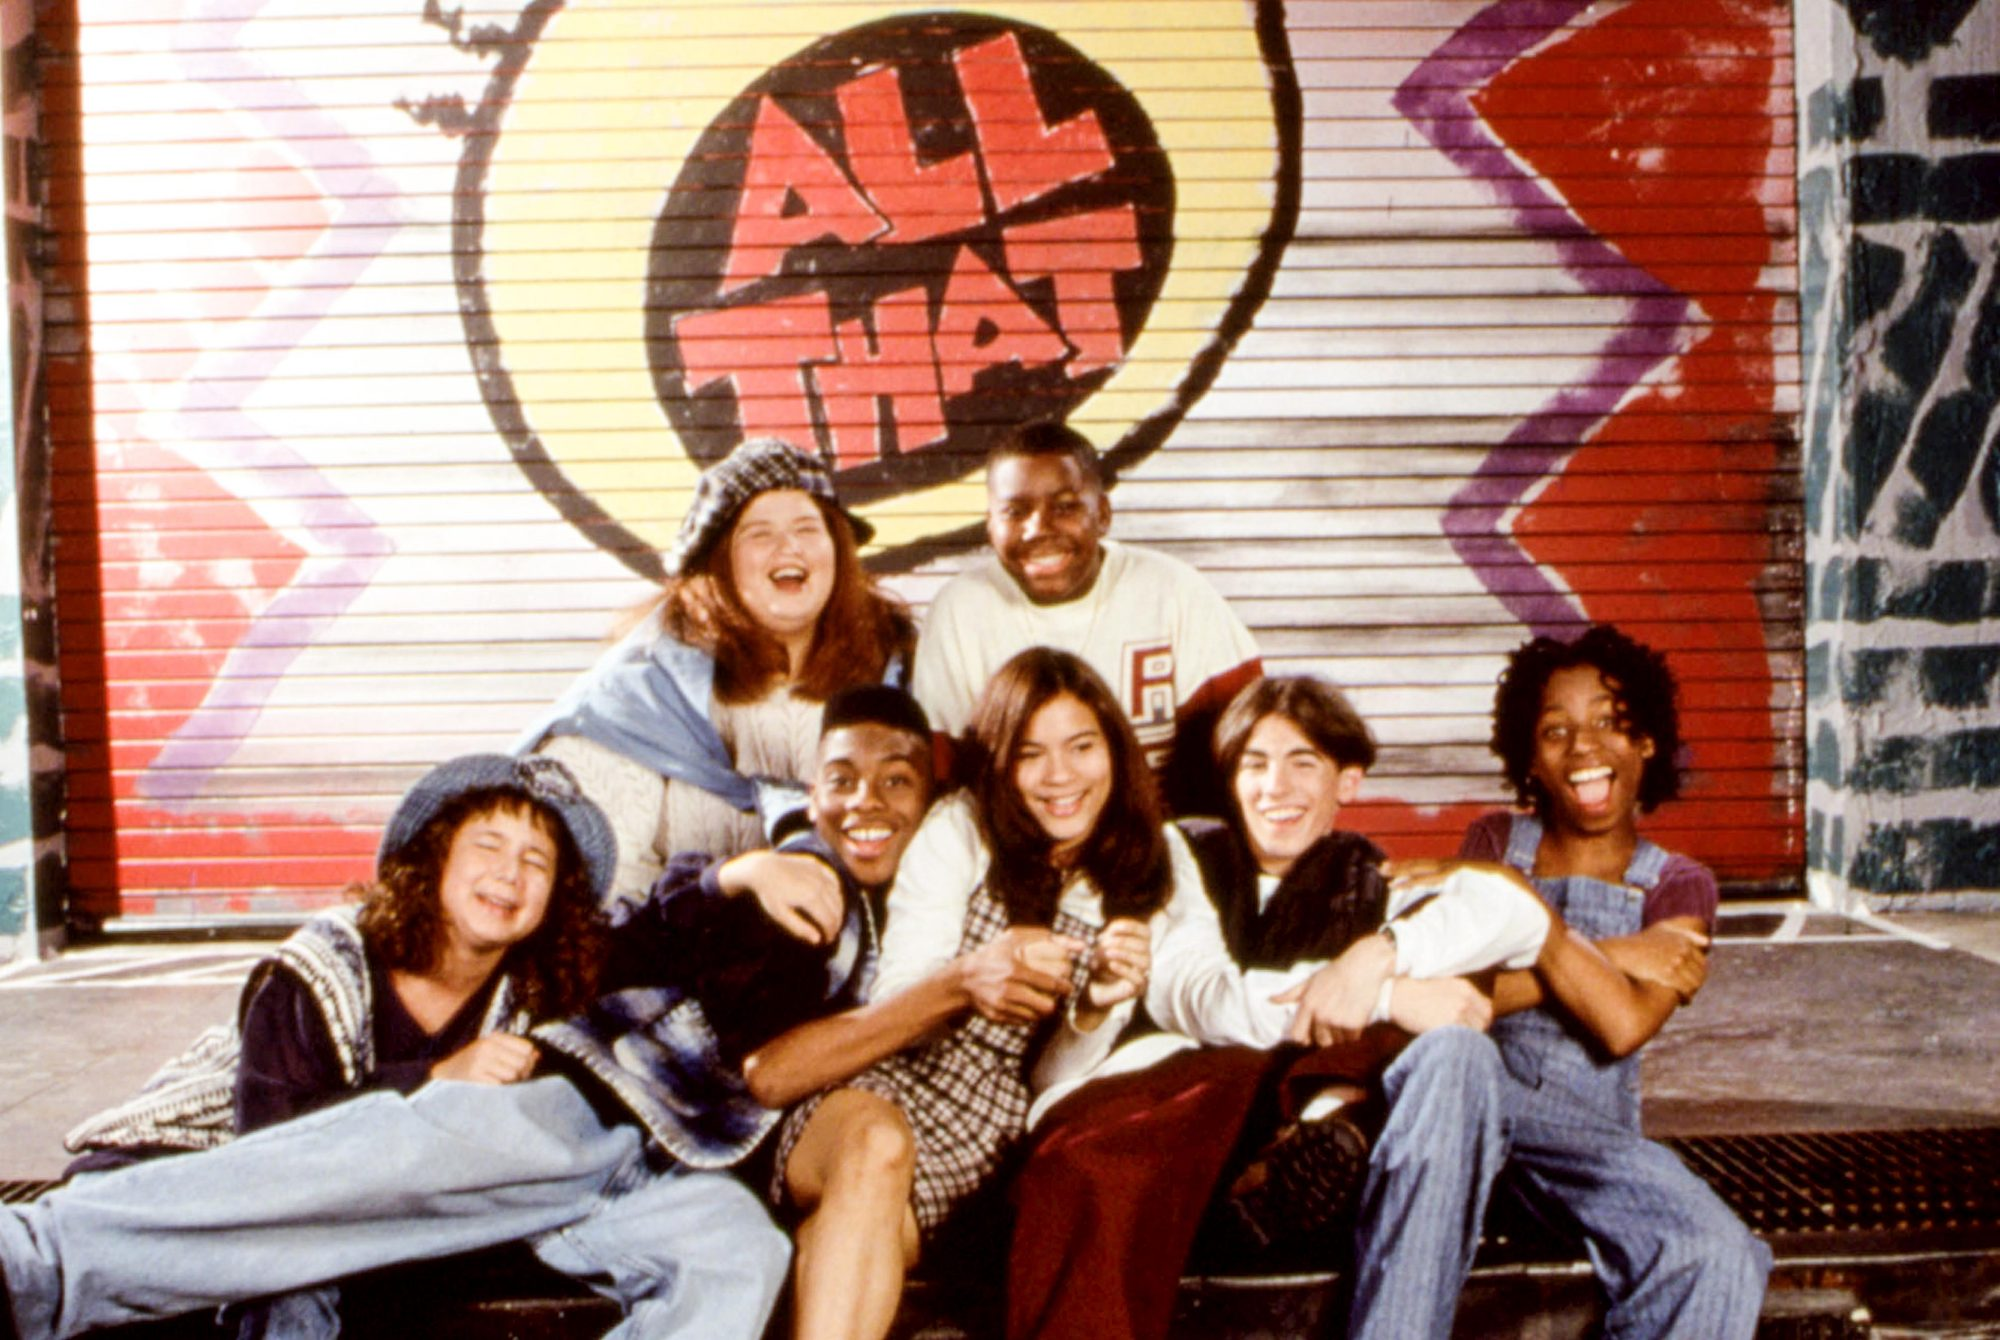 ALL THAT, (l-r): Katrina Johnson, Lori Beth Denberg, Kel Mitchell, Kenan Thompson, Alisa Reyes, Josh